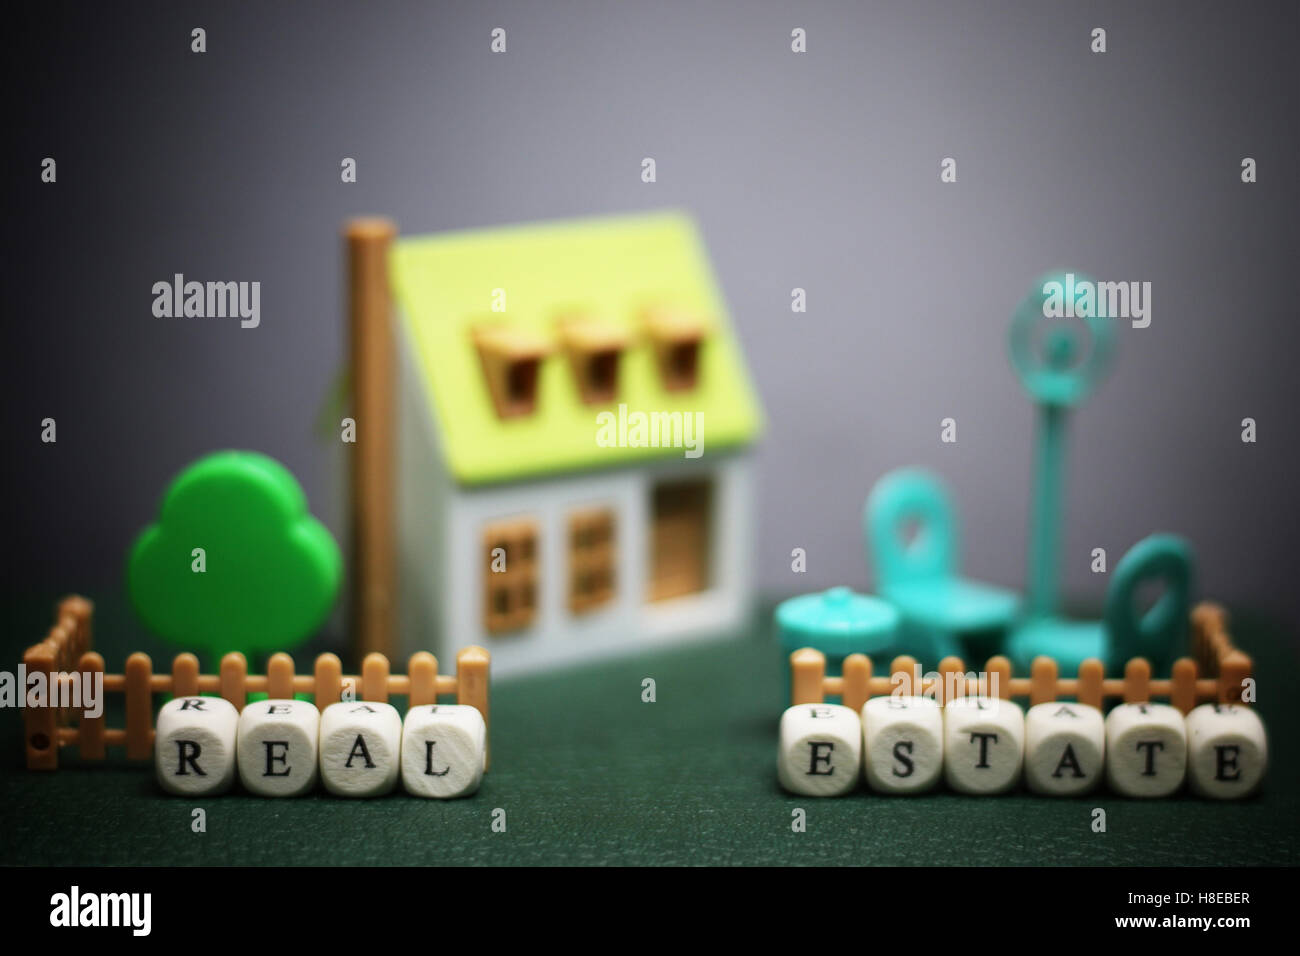 house real estate model - Stock Image